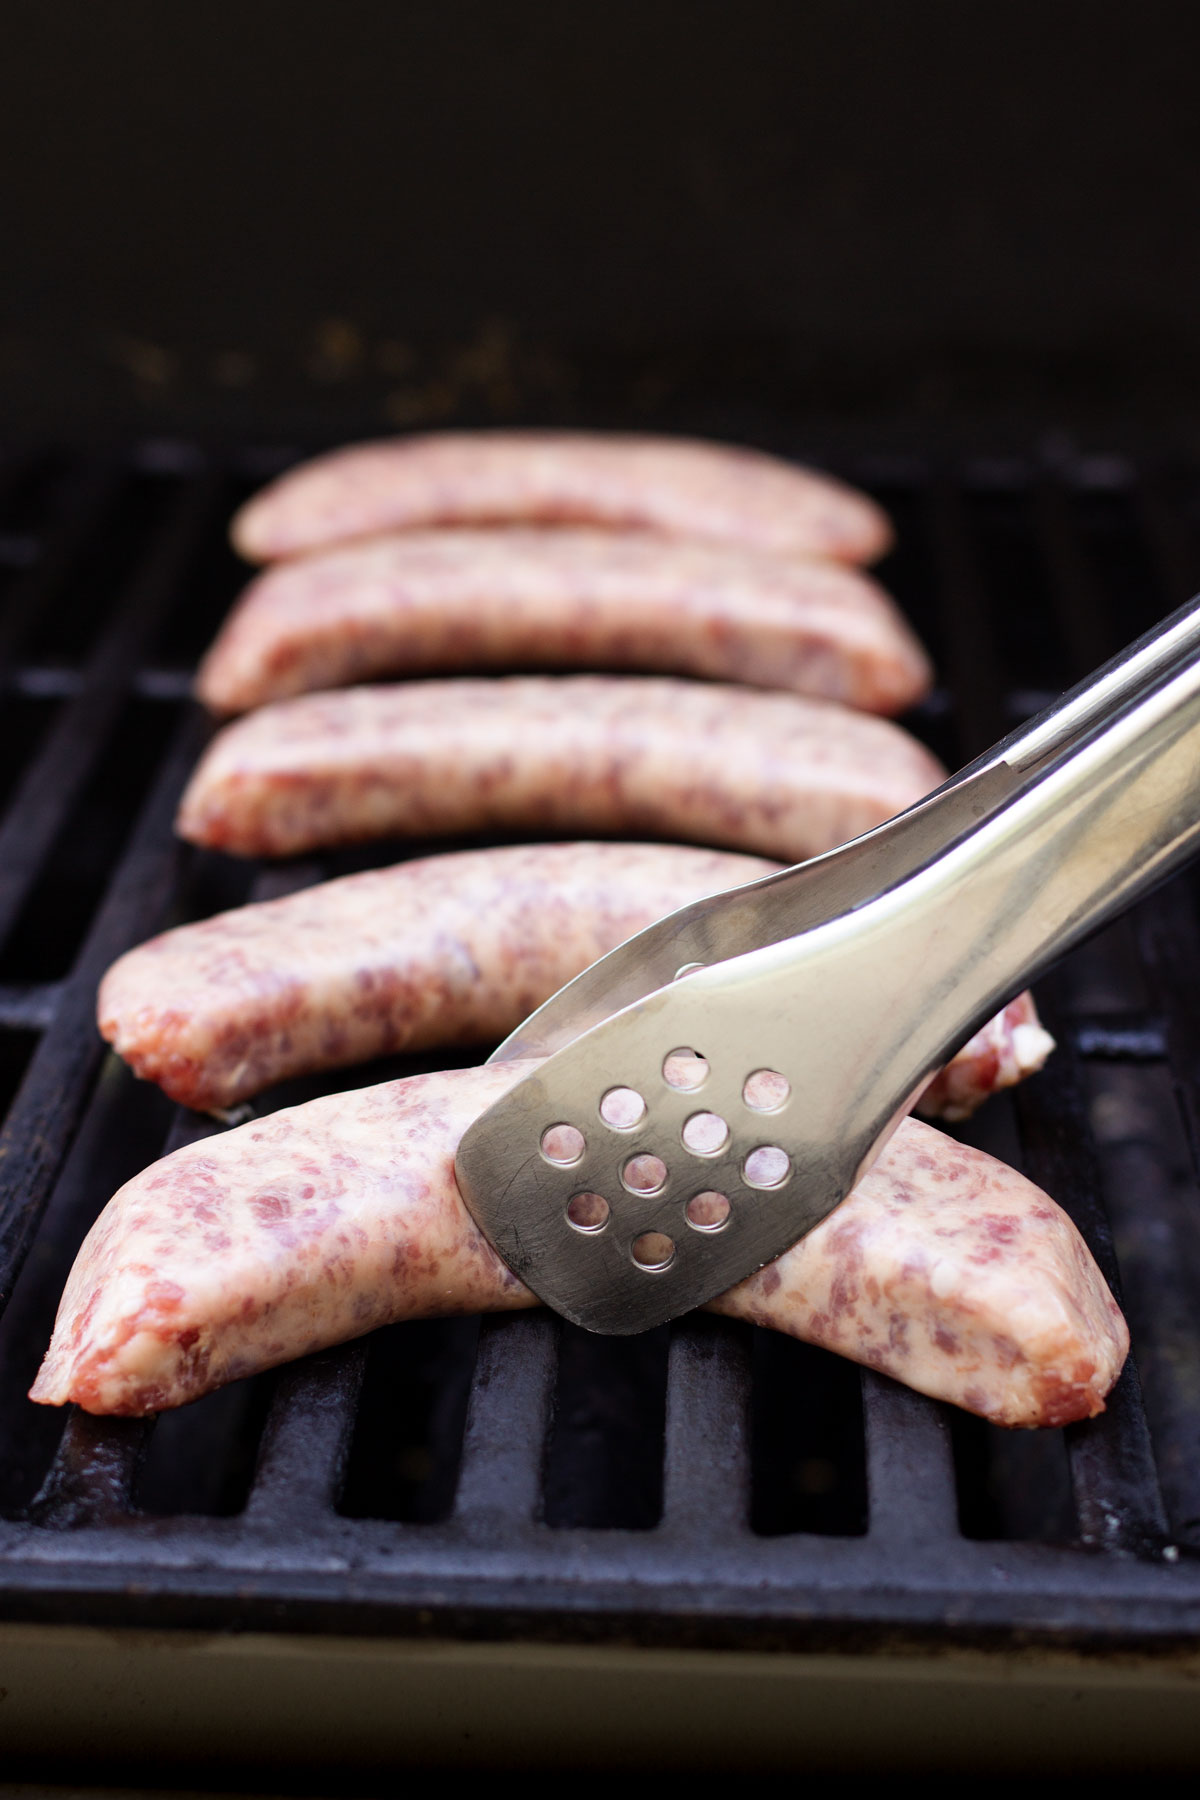 turning the brats with tongs on the hot grill.